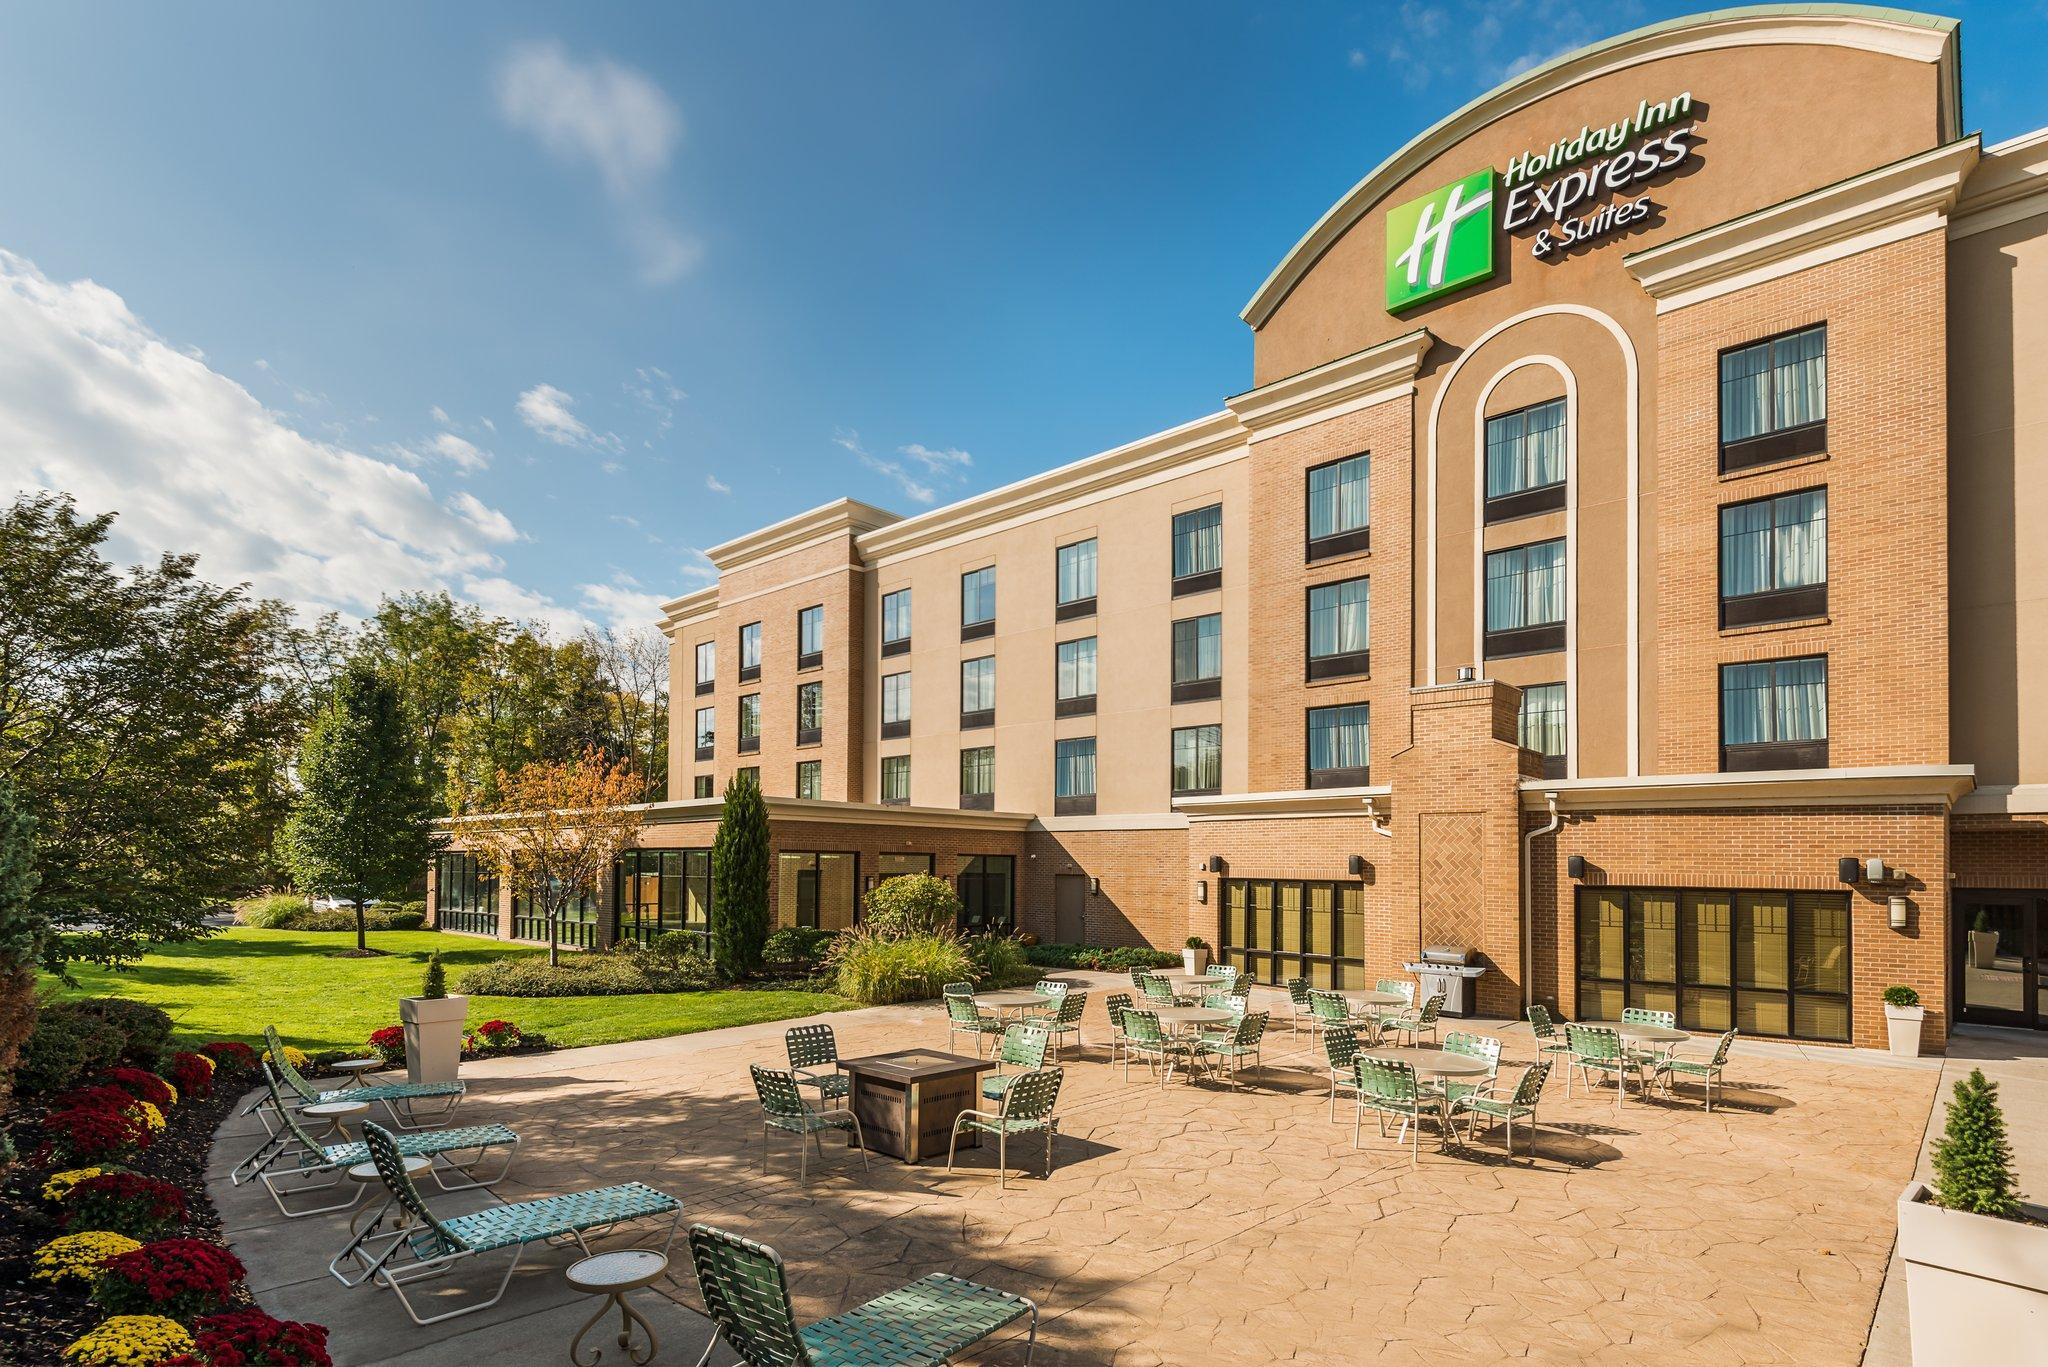 Holiday Inn Express Hotel And Suites Rochester Webster